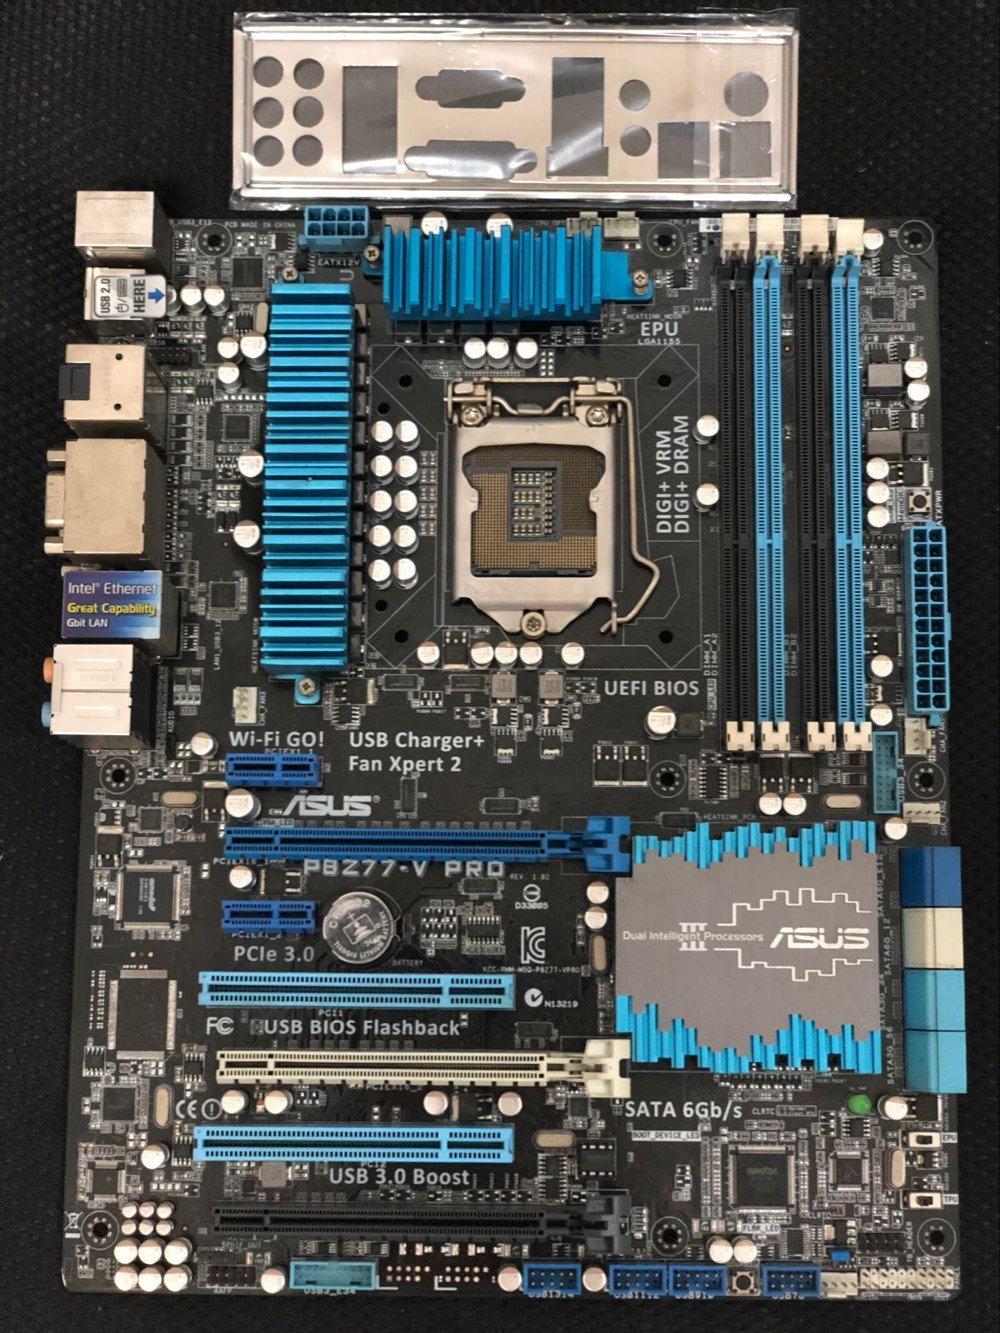 original motherboard ASUS P8Z77-V PRO DDR3 LGA 1155 for I3 I5 I7 CPU 32GB USB3.0 SATA3 Z77 motherboard Free shipping